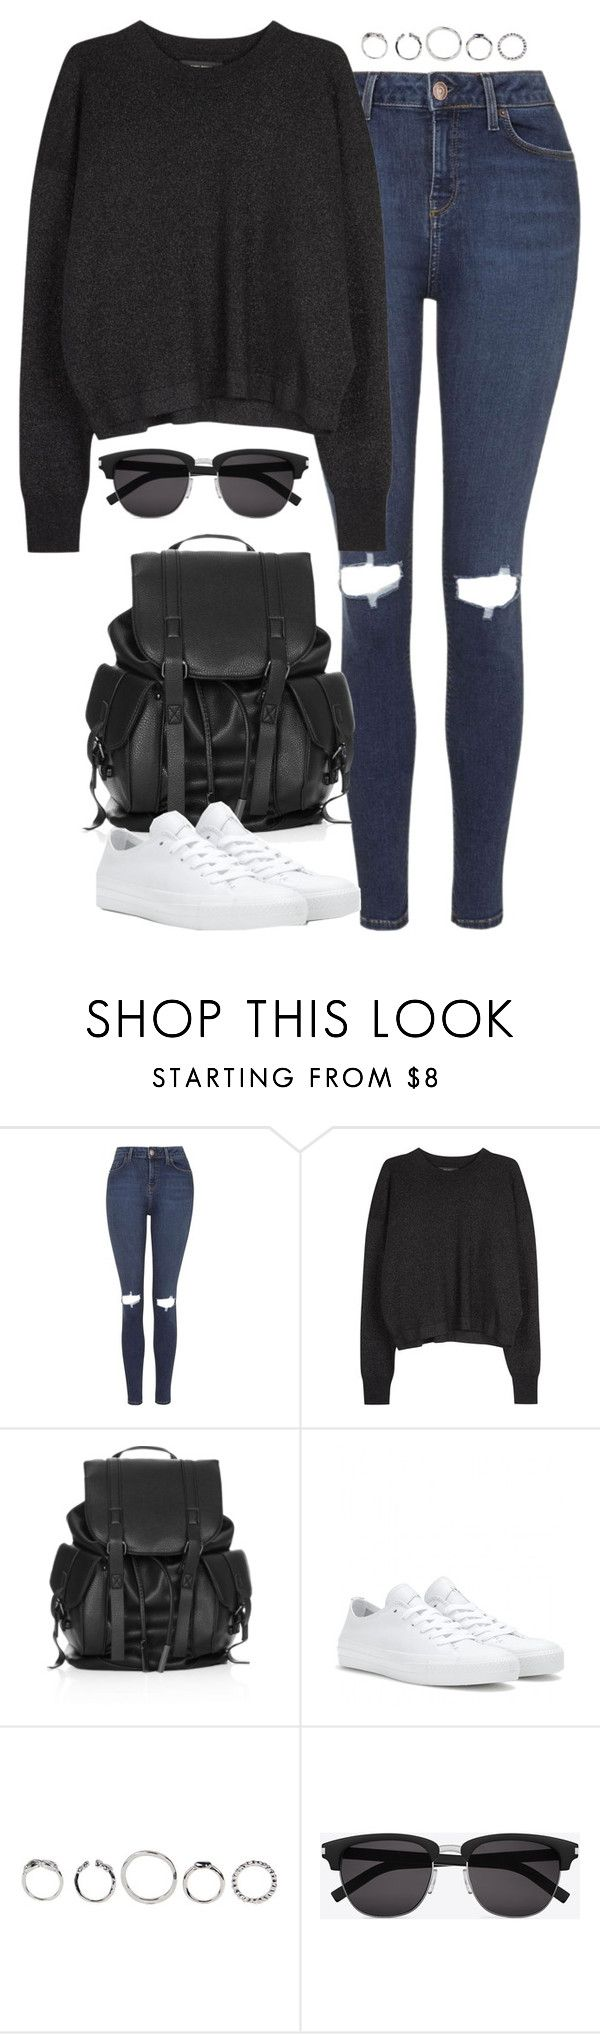 """Untitled #4913"" by eleanorsclosettt ❤ liked on Polyvore featuring Topshop, Isabel Marant, Converse and Yves Saint Laurent"